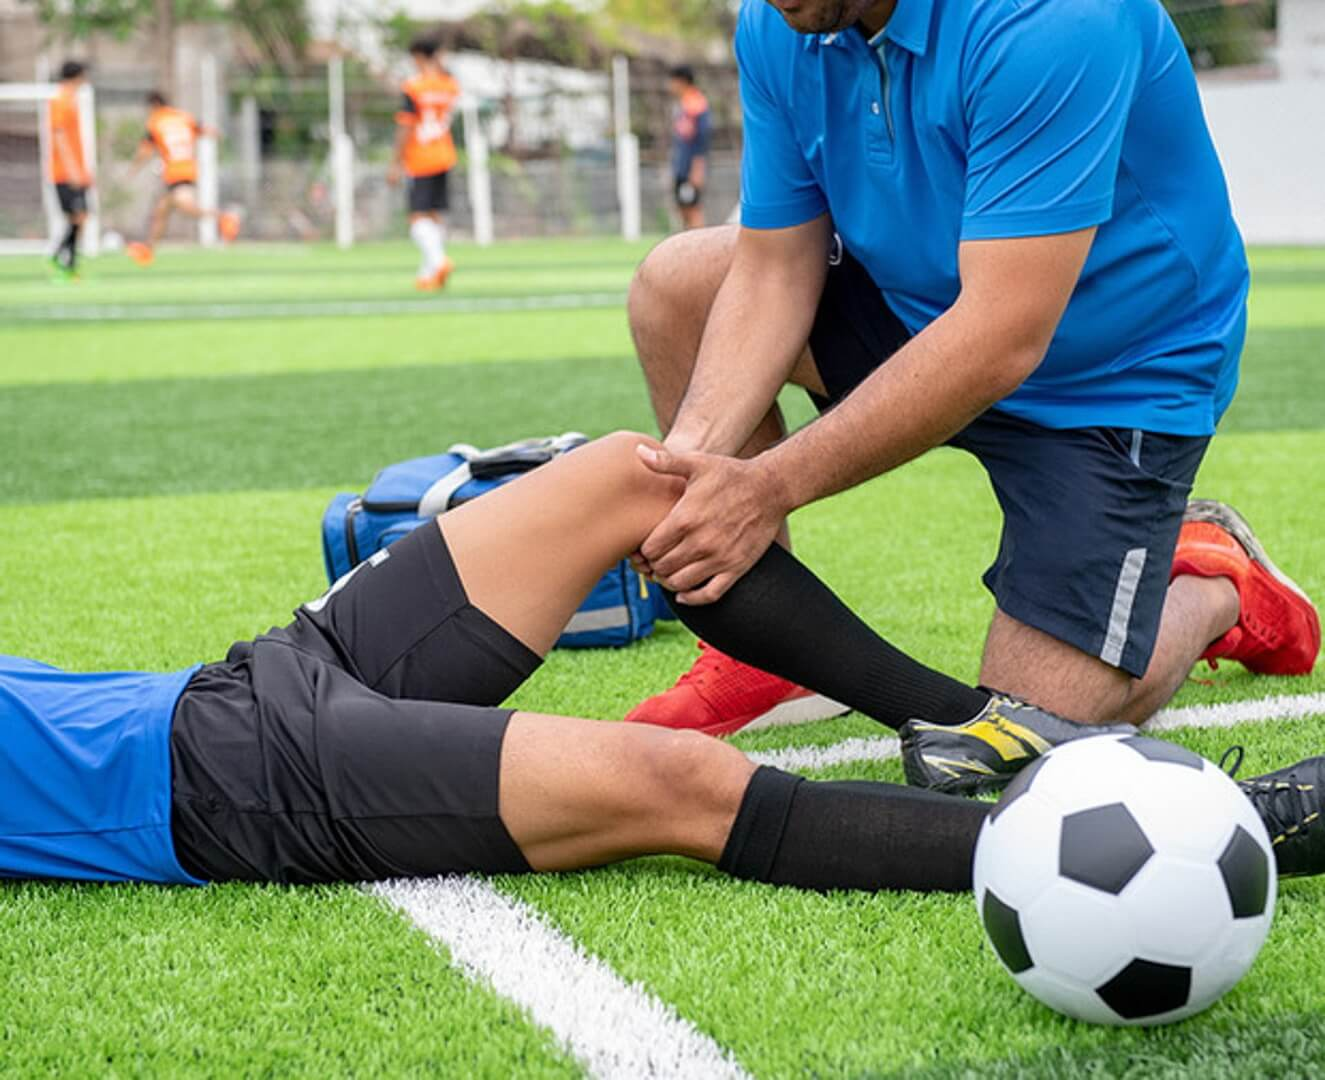 Common Sports Injuries and How a Sports Physiotherapist Can Help